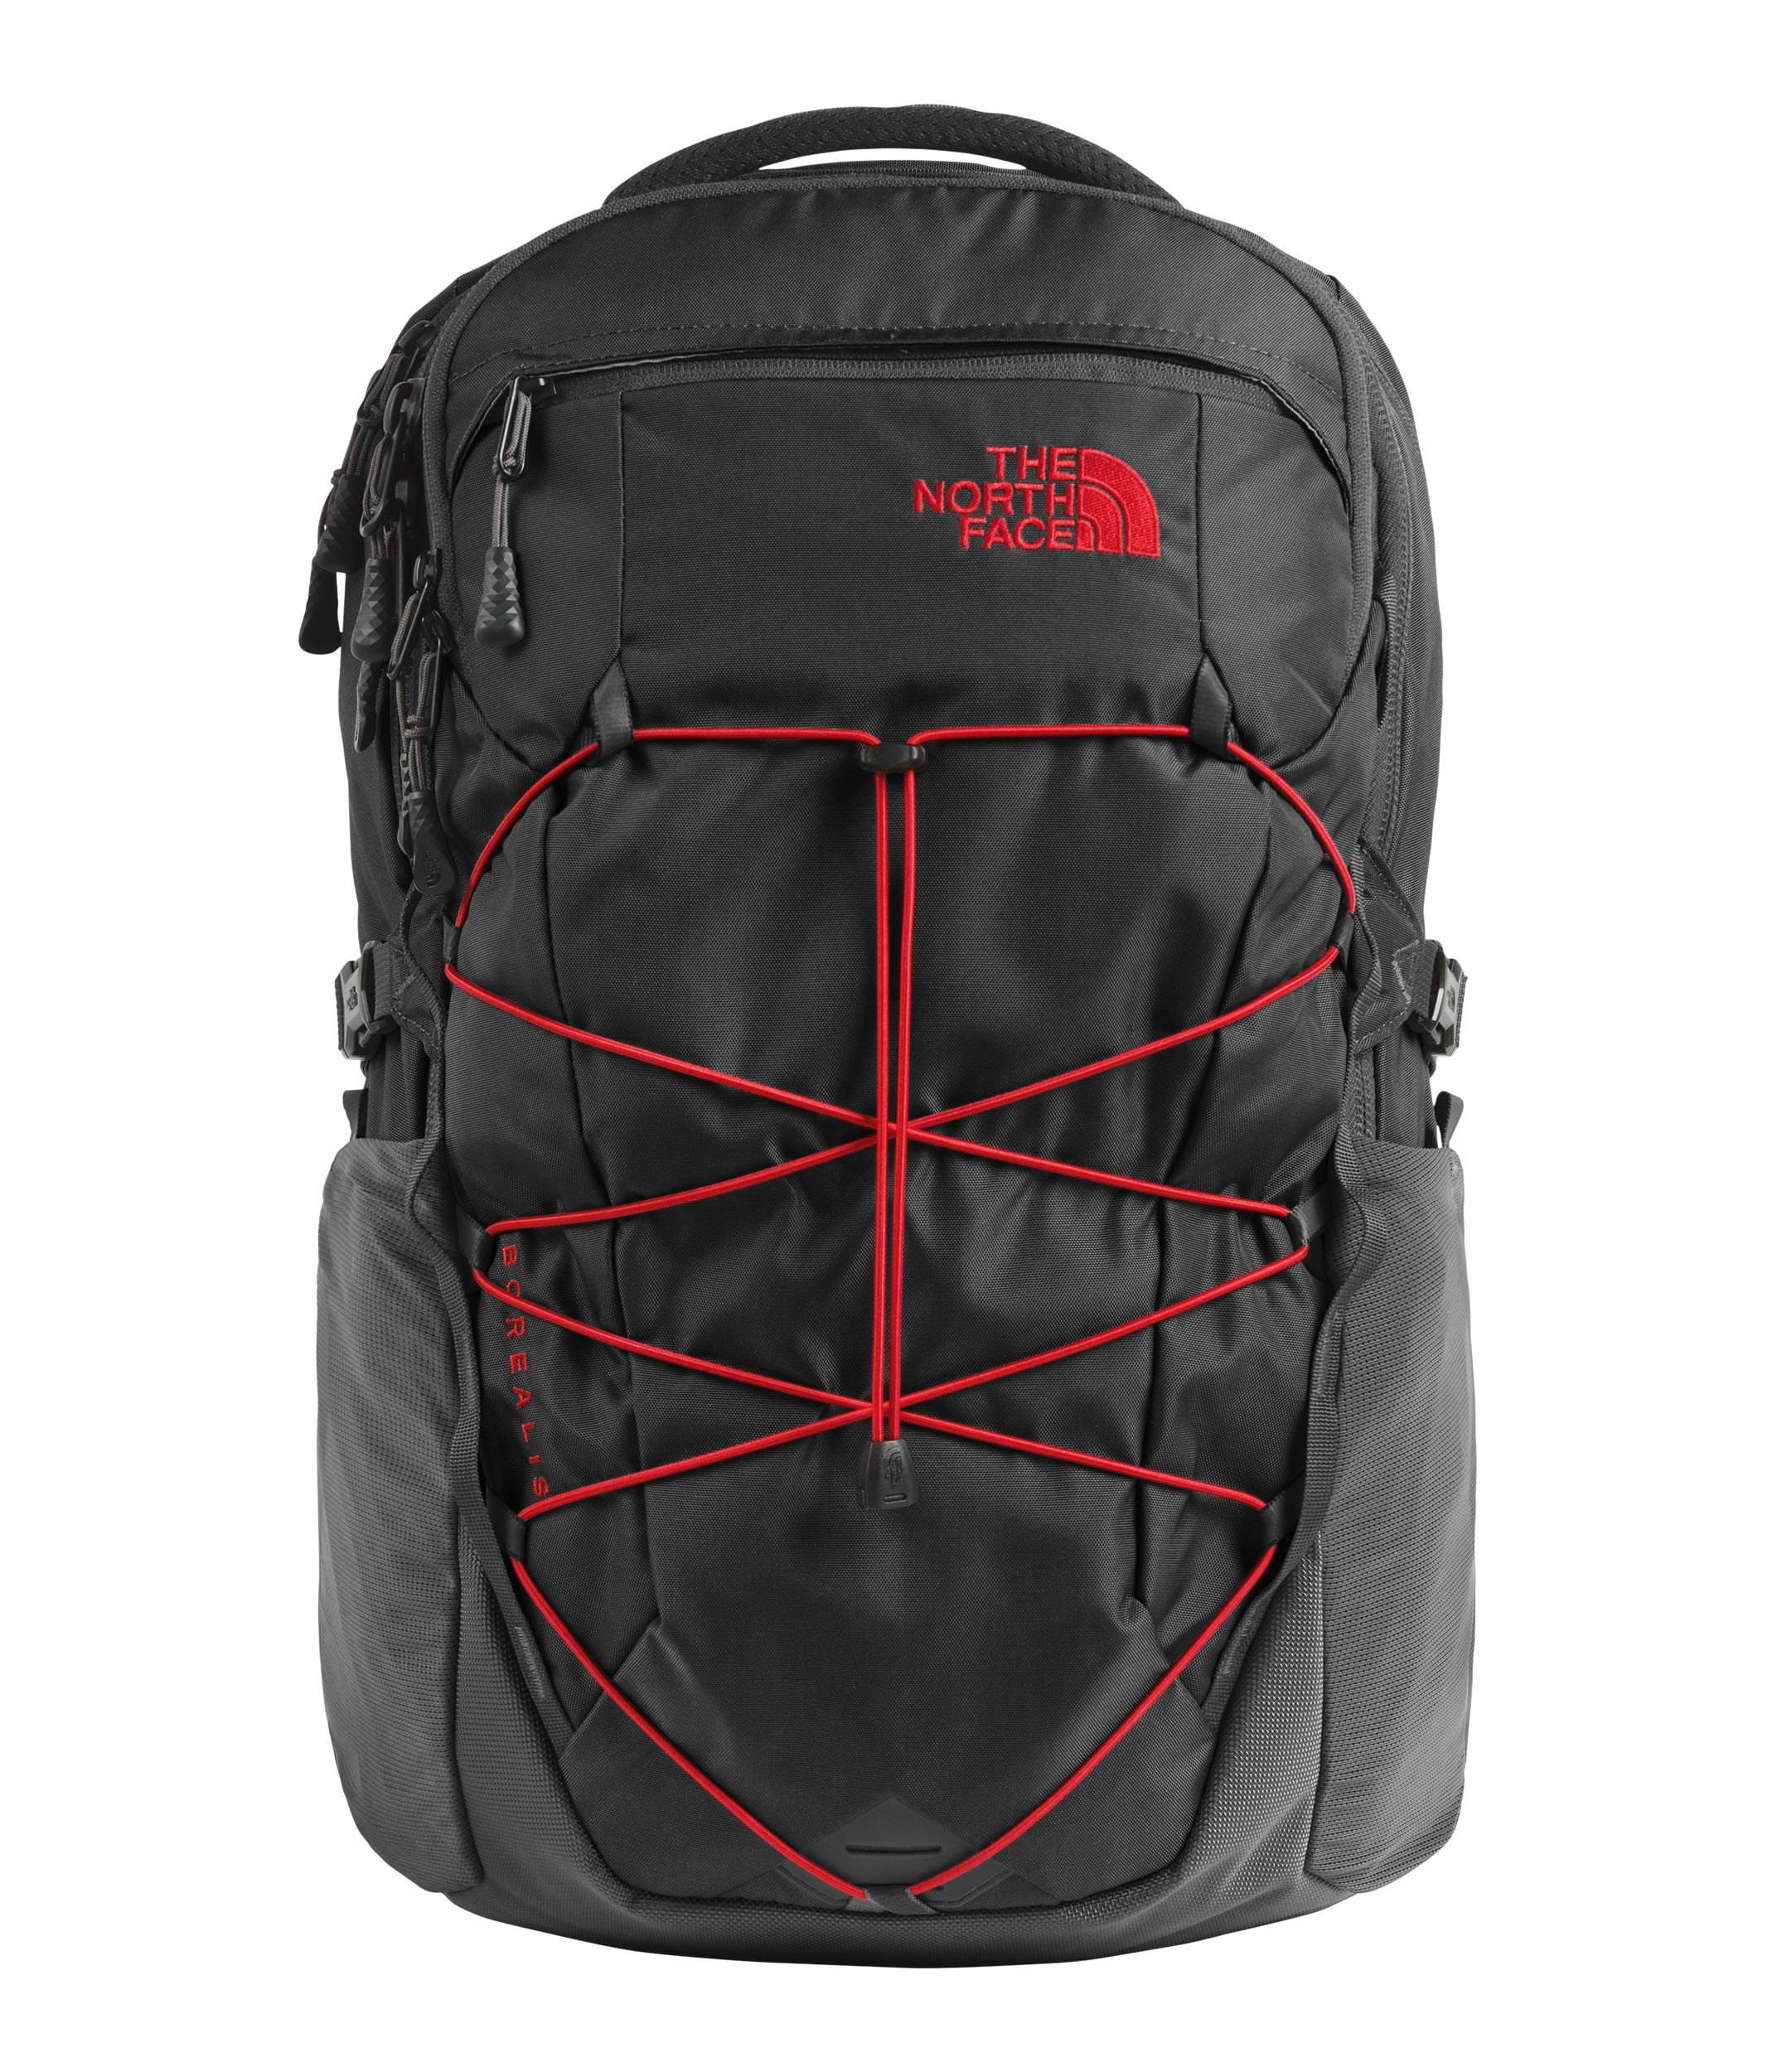 The North Face Unisex Borealis Asphalt Grey/Fiery Red One Size